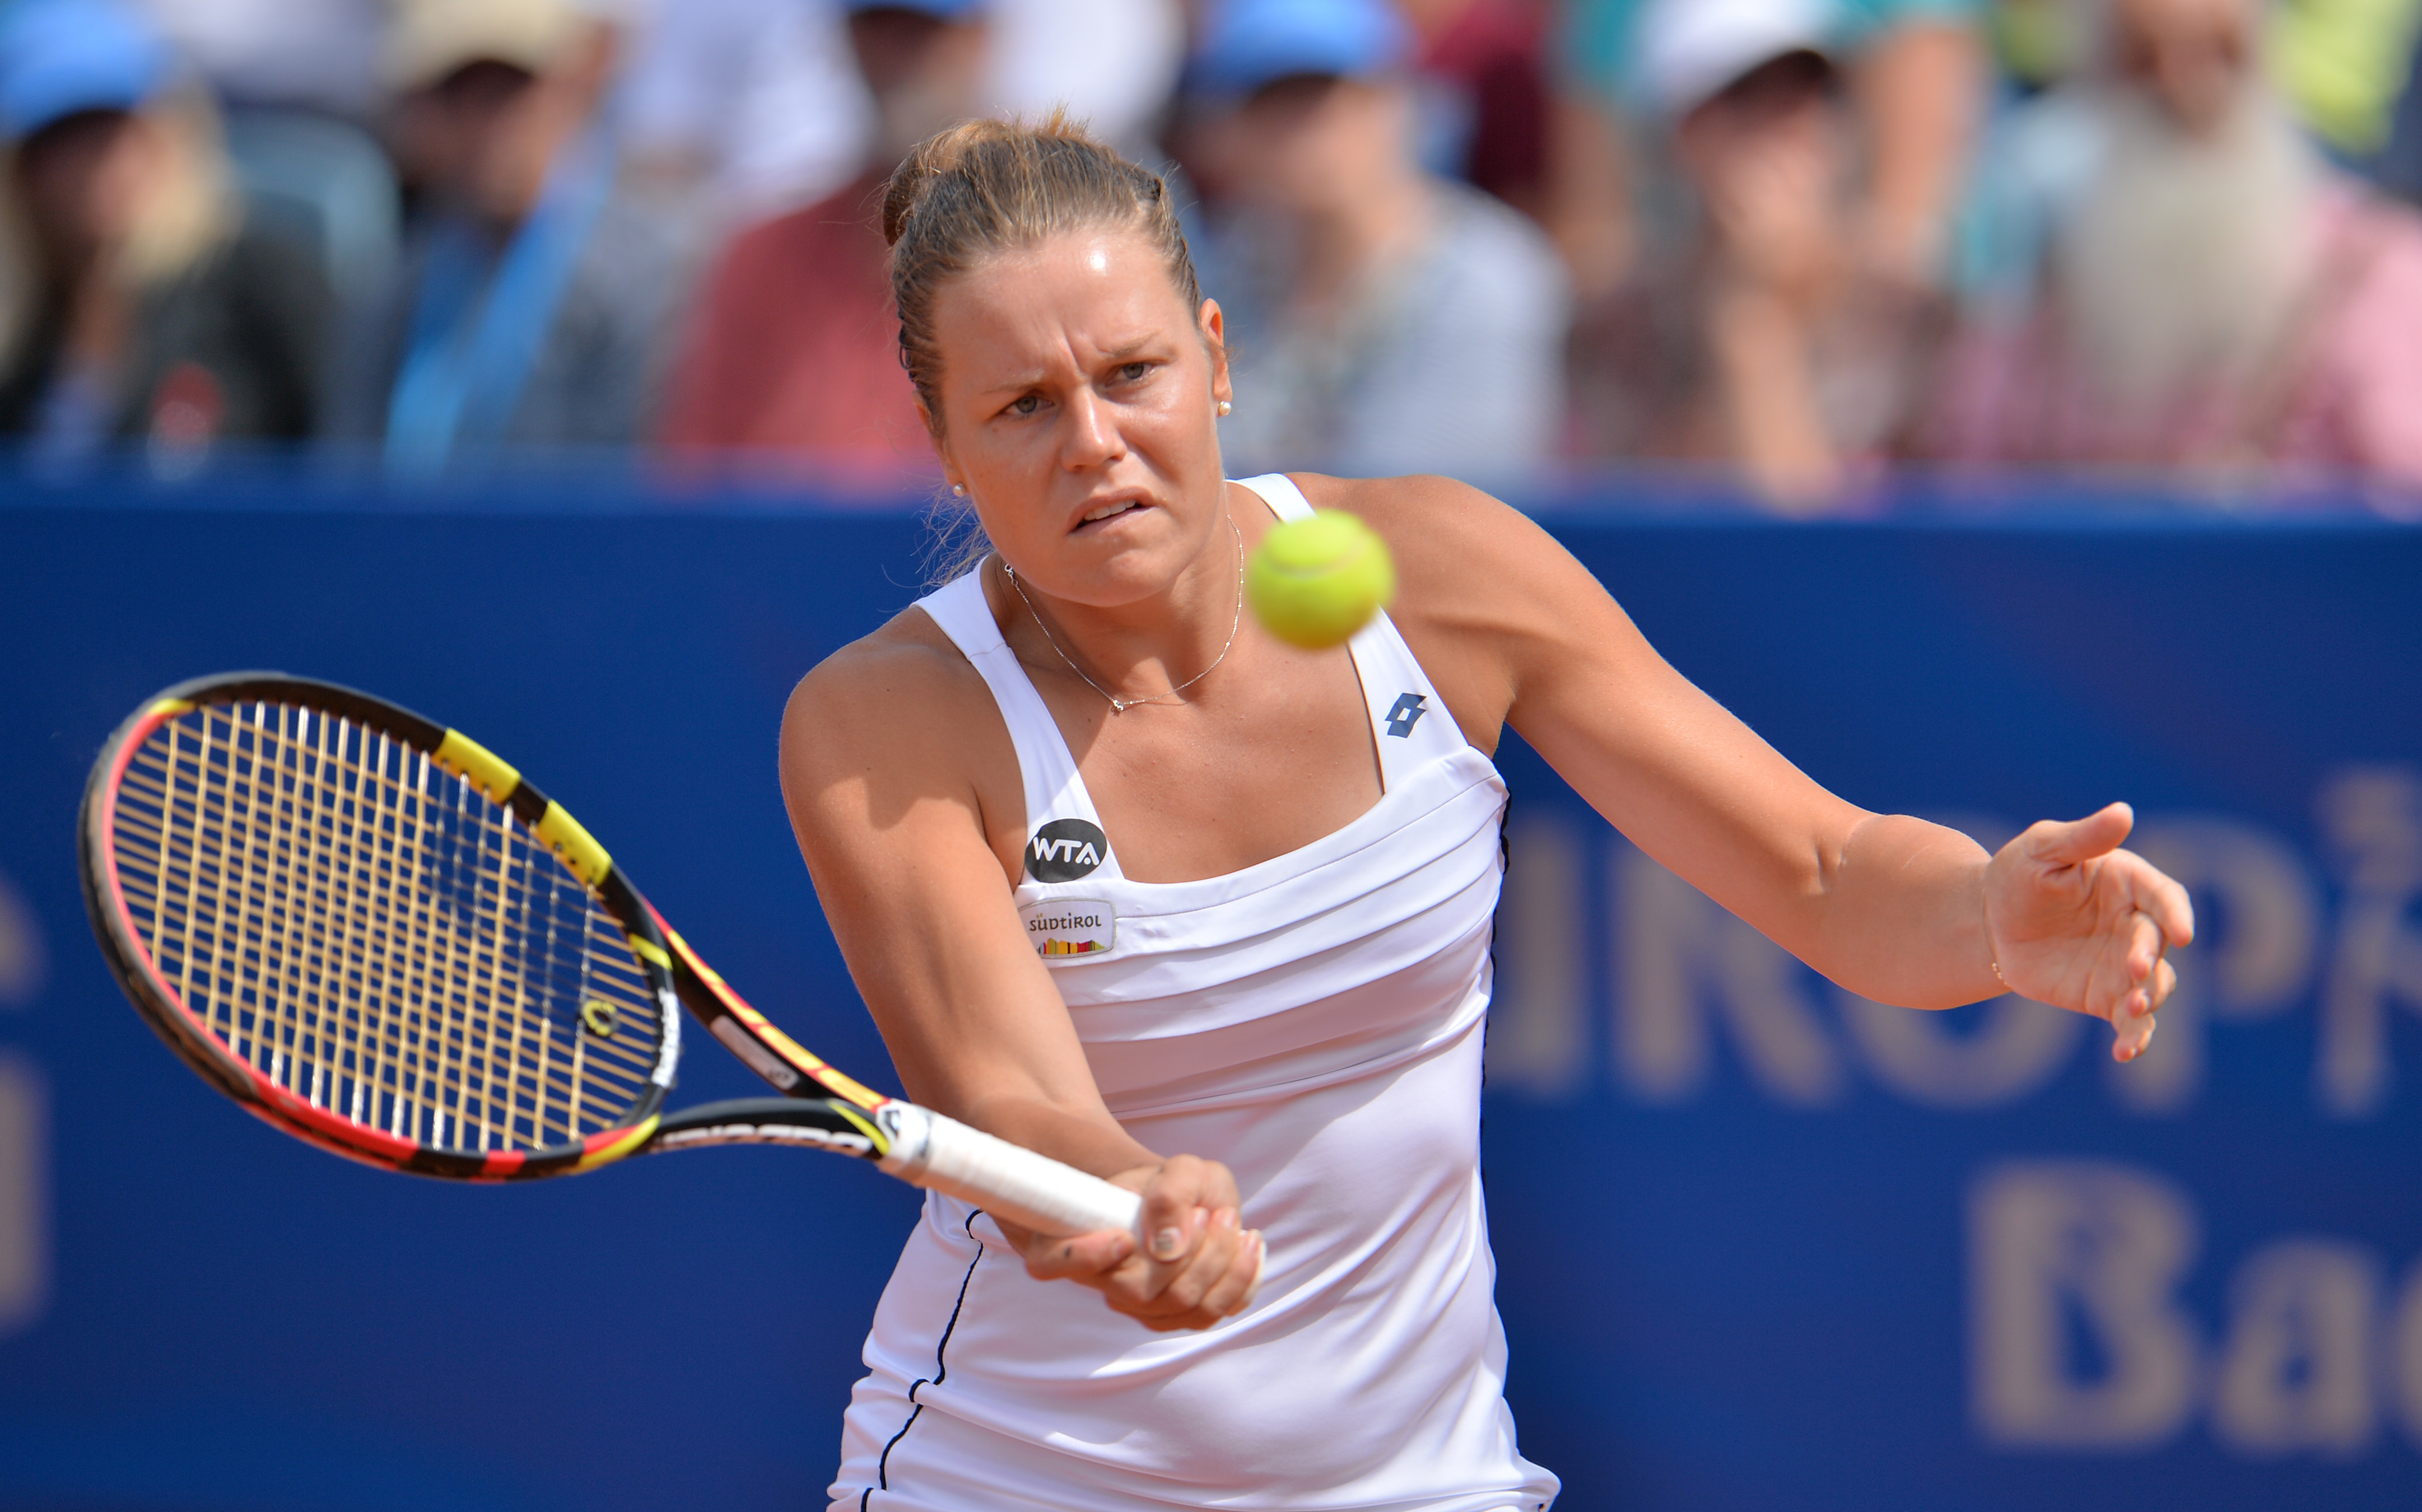 Karin Knapp from Italy returns the ball during her final match against Australia's Samantha Stosur at the WTA tennis tournament in Bad Gastein, Austria, on Sunday, July. 26, 2015. Stosur won with 3-6, 7-6 and 6-2. (AP Photo/Kerstin Joensson)